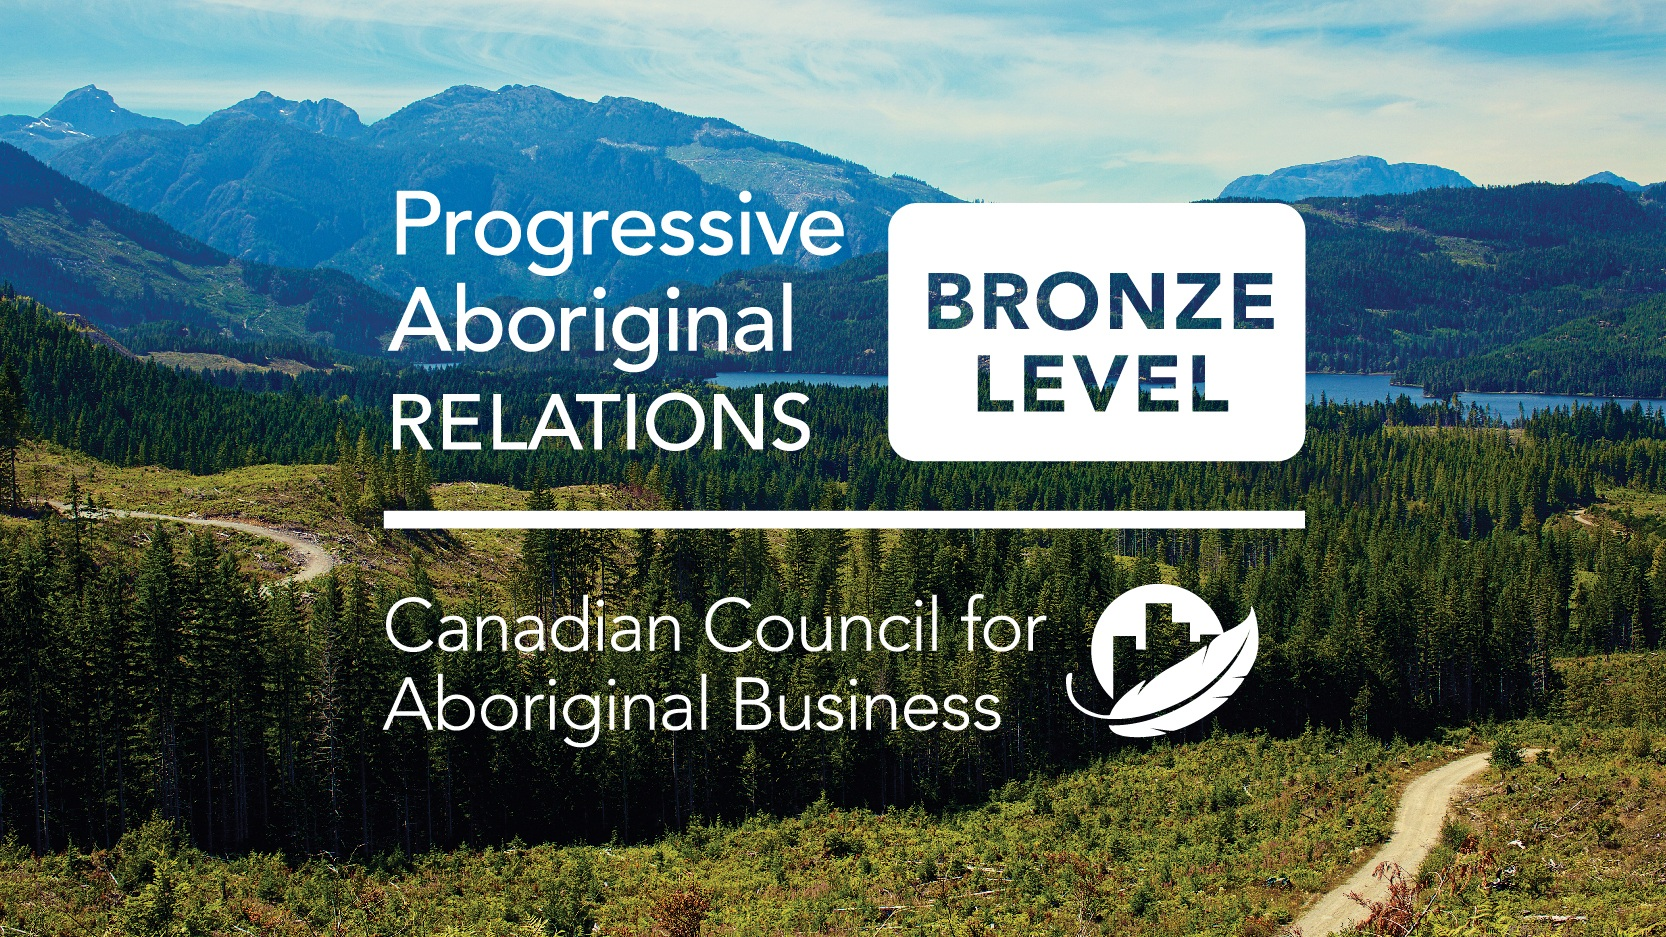 PROGRESSIVE ABORIGINAL RELATIONS CERTIFICATION EXPANDED TO ALL MOSAIC-MANAGED LANDS  On June 17, 2019, we were pleased to announce the expansion of our bronze-level Progressive Aboriginal Relations certification to all lands we manage. This certification from the Canadian Council for Aboriginal Business signals that Mosaic Forest Management is a committed partner with the policies, systems, and resources dedicated to achieving positive outcomes in our indigenous relationships. We also established a fund to advance Indigenous language revitalization.  You can find more information here .